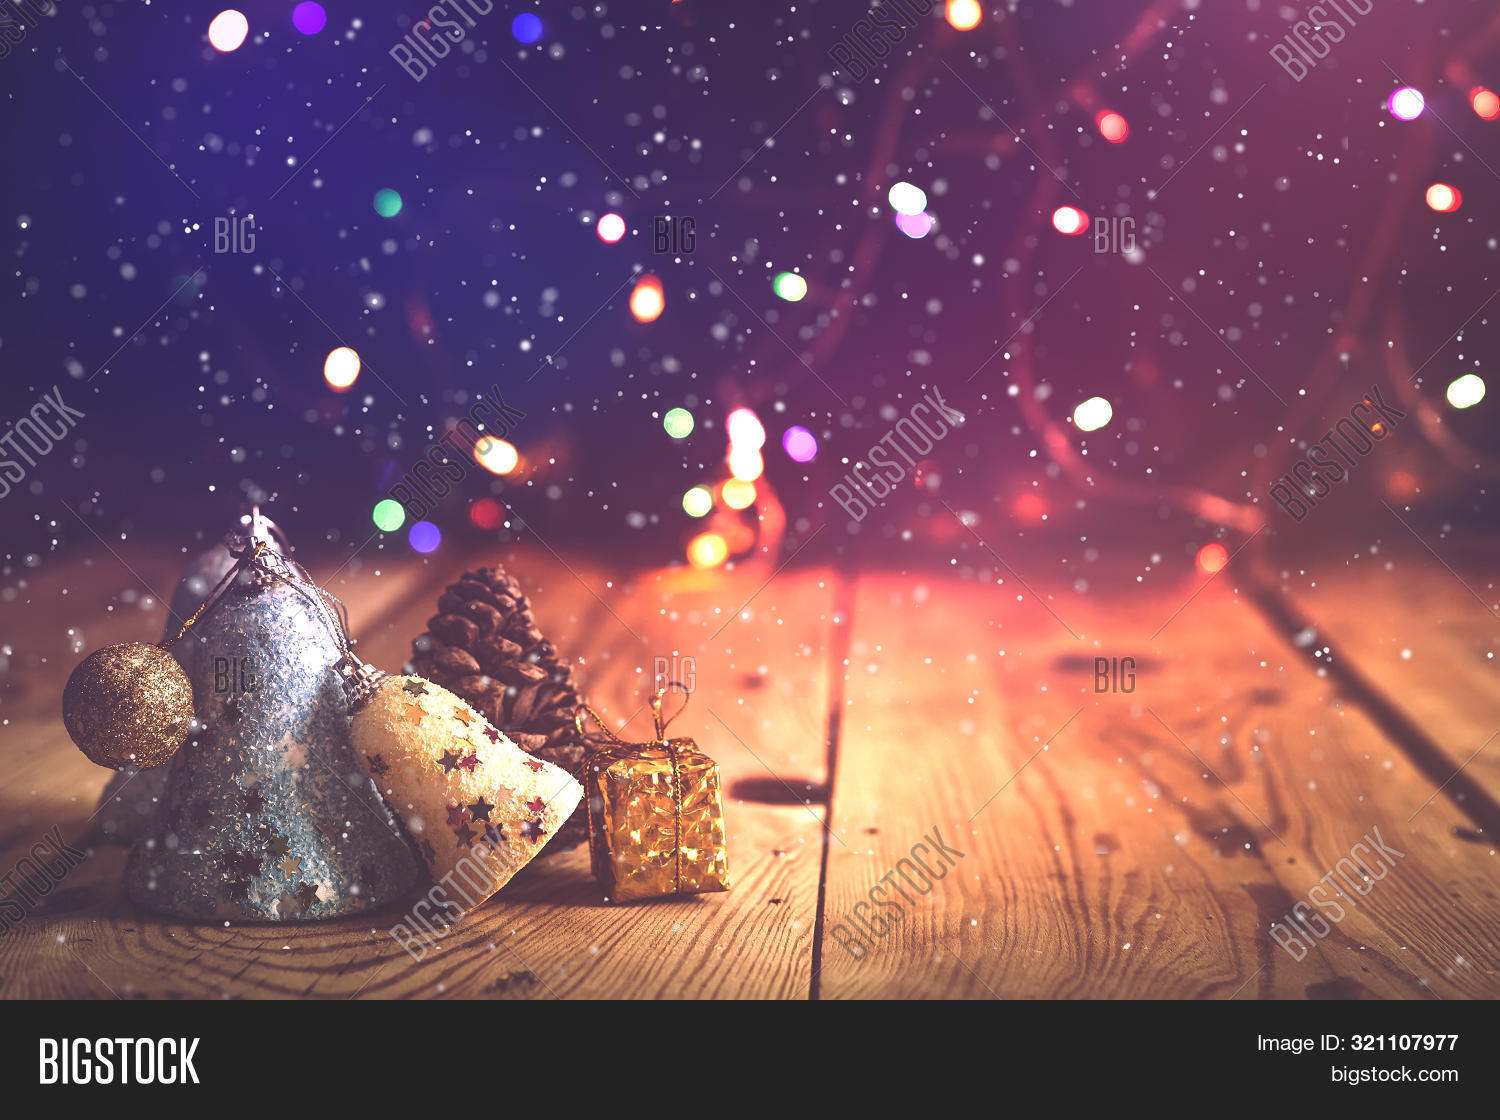 2020,advent,background,ball,blur,blurry,bokeh,celebrate,celebration,christmas,colourful,colours,concept,cone,copy,december,decorate,decoration,decorative,eve,festive,gift,gold,greeting,happy,holiday,light,magic,merry,new,nobody,party,pine,rustic,seasonal,snow,snowfall,space,text,toy,traditional,tree,vibrant,vintage,weihnachten,winter,wood,wooden,xmas,year